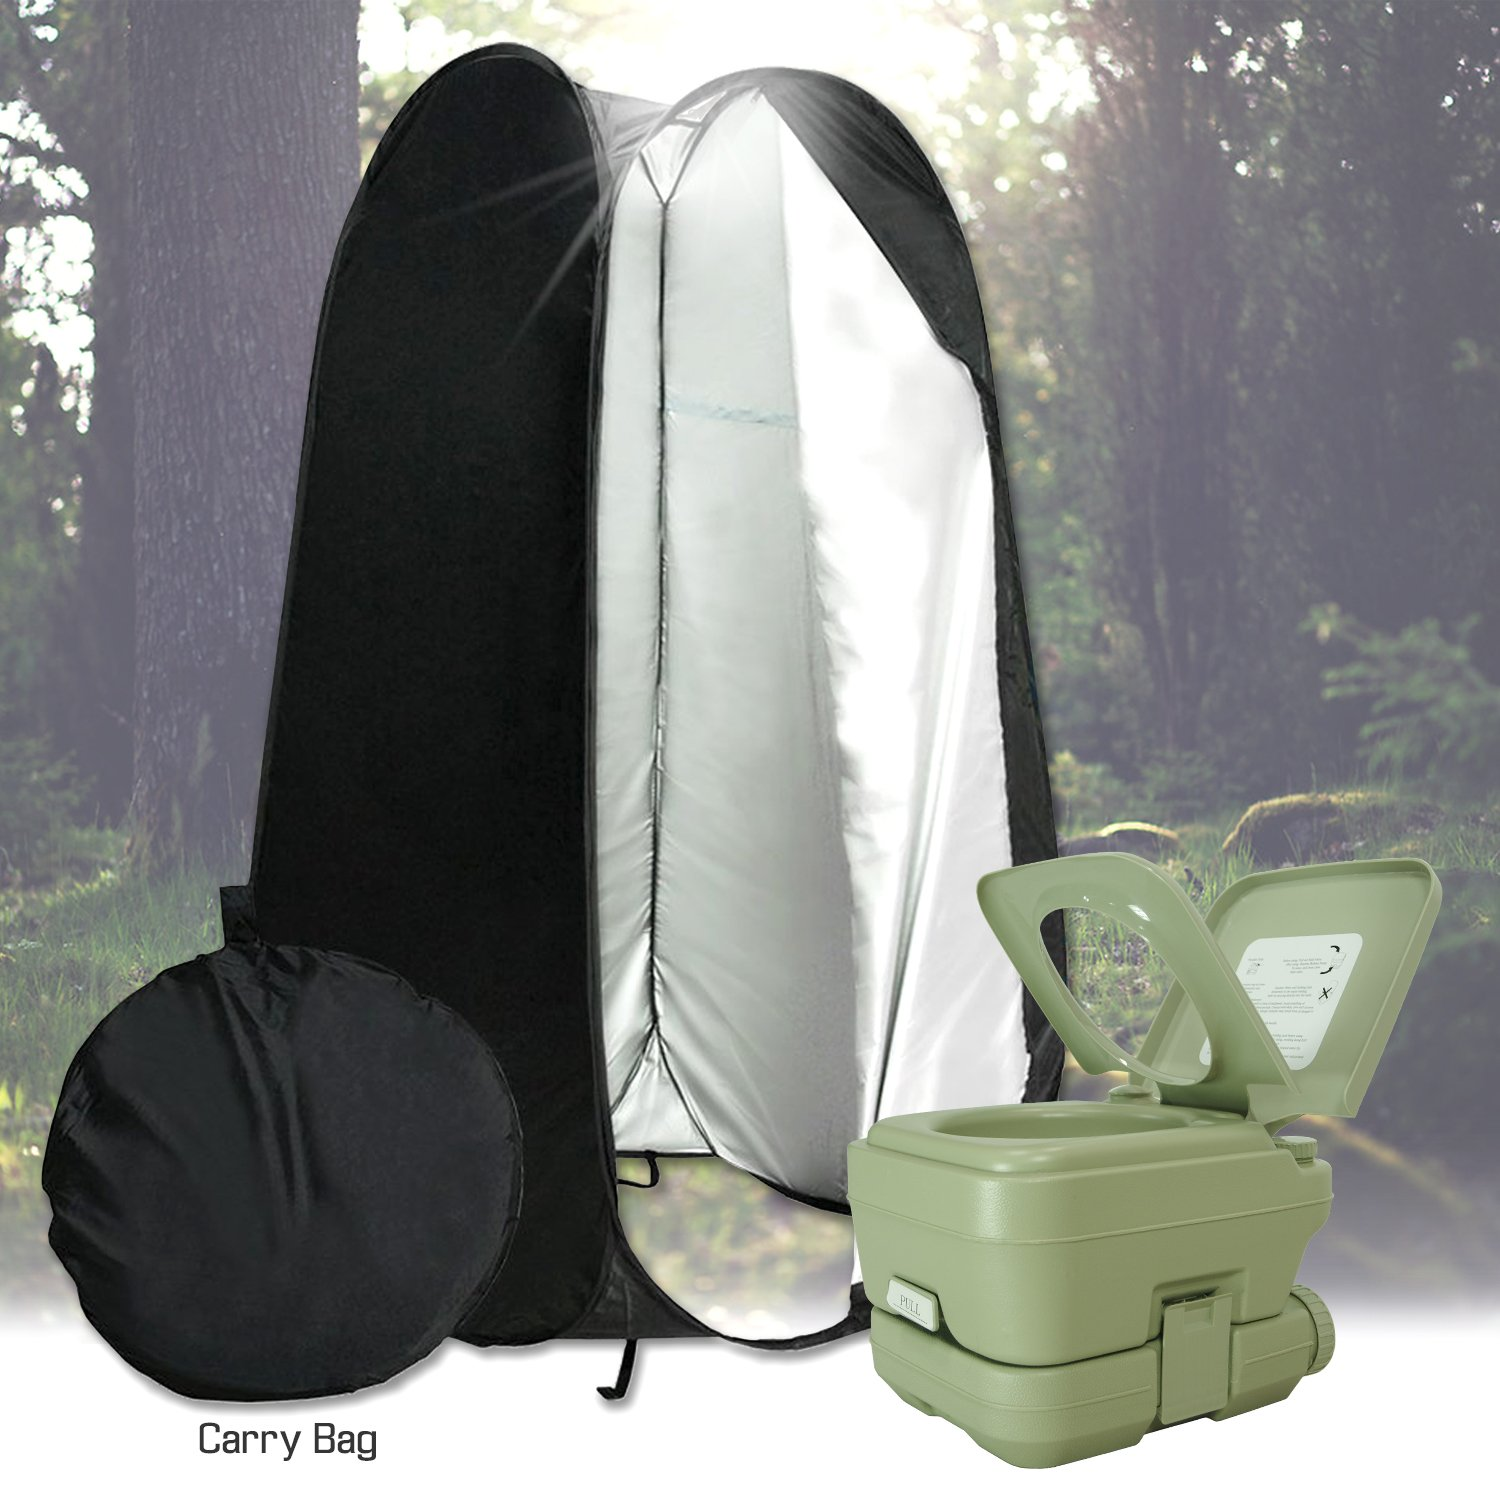 PARTYSAVING 2.6 Gallon Portable Potty and 6 Foot Privacy Instant Pop Up Tent for Outdoors Camping Boats Beach Park, APL1984